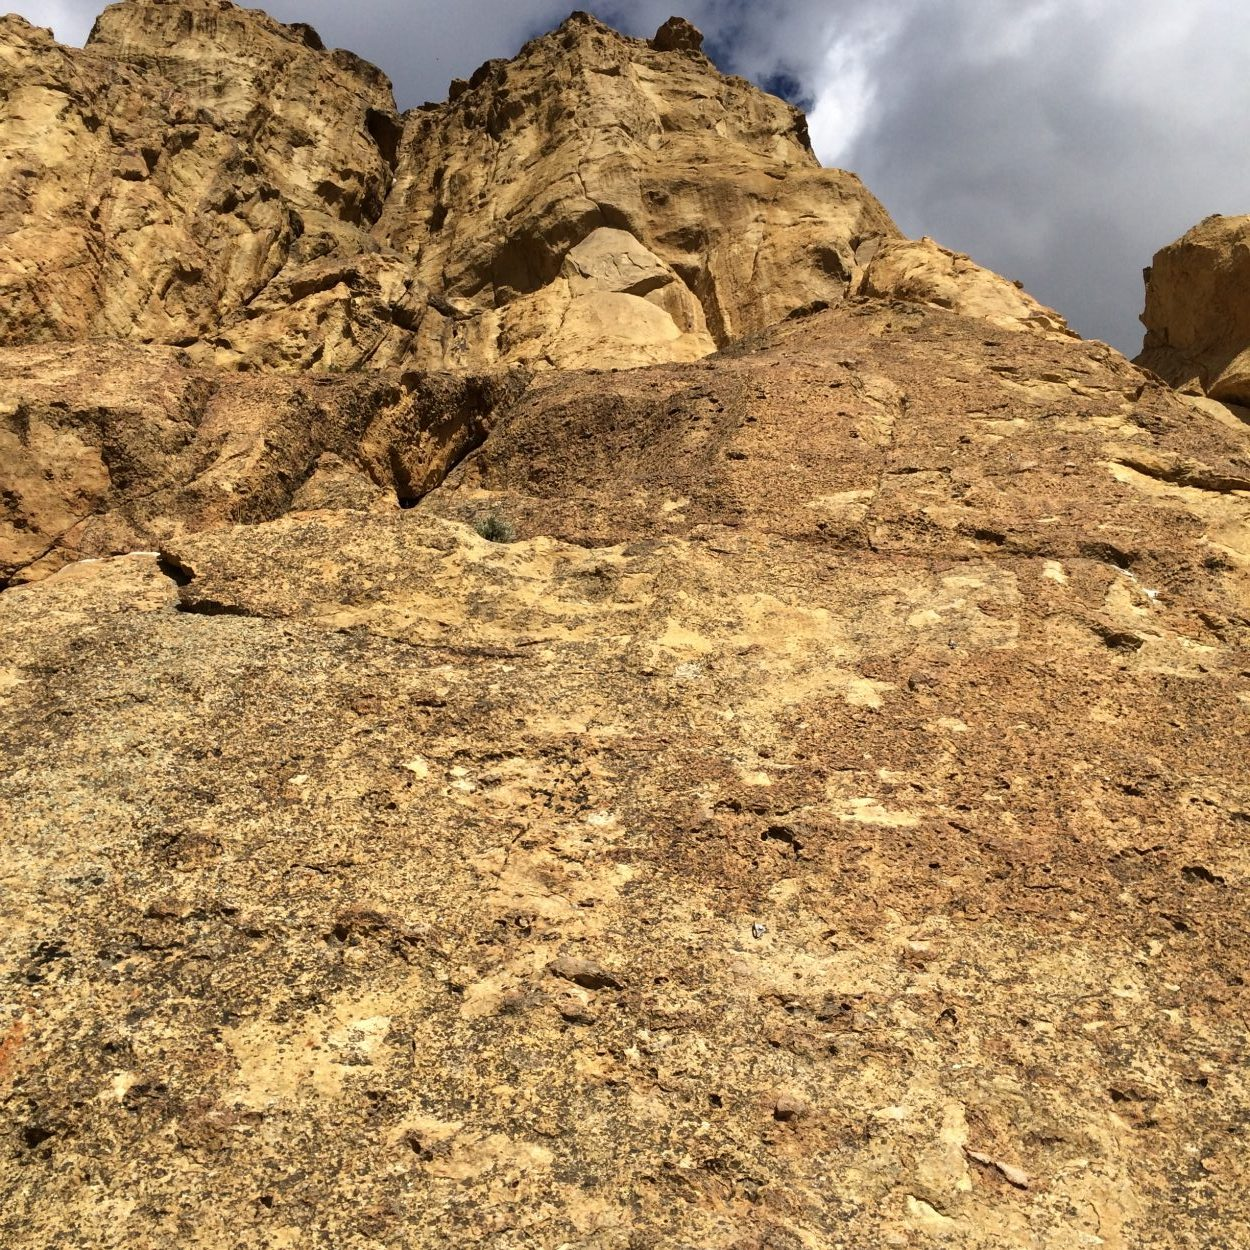 Round There - Smith Rock Climbing